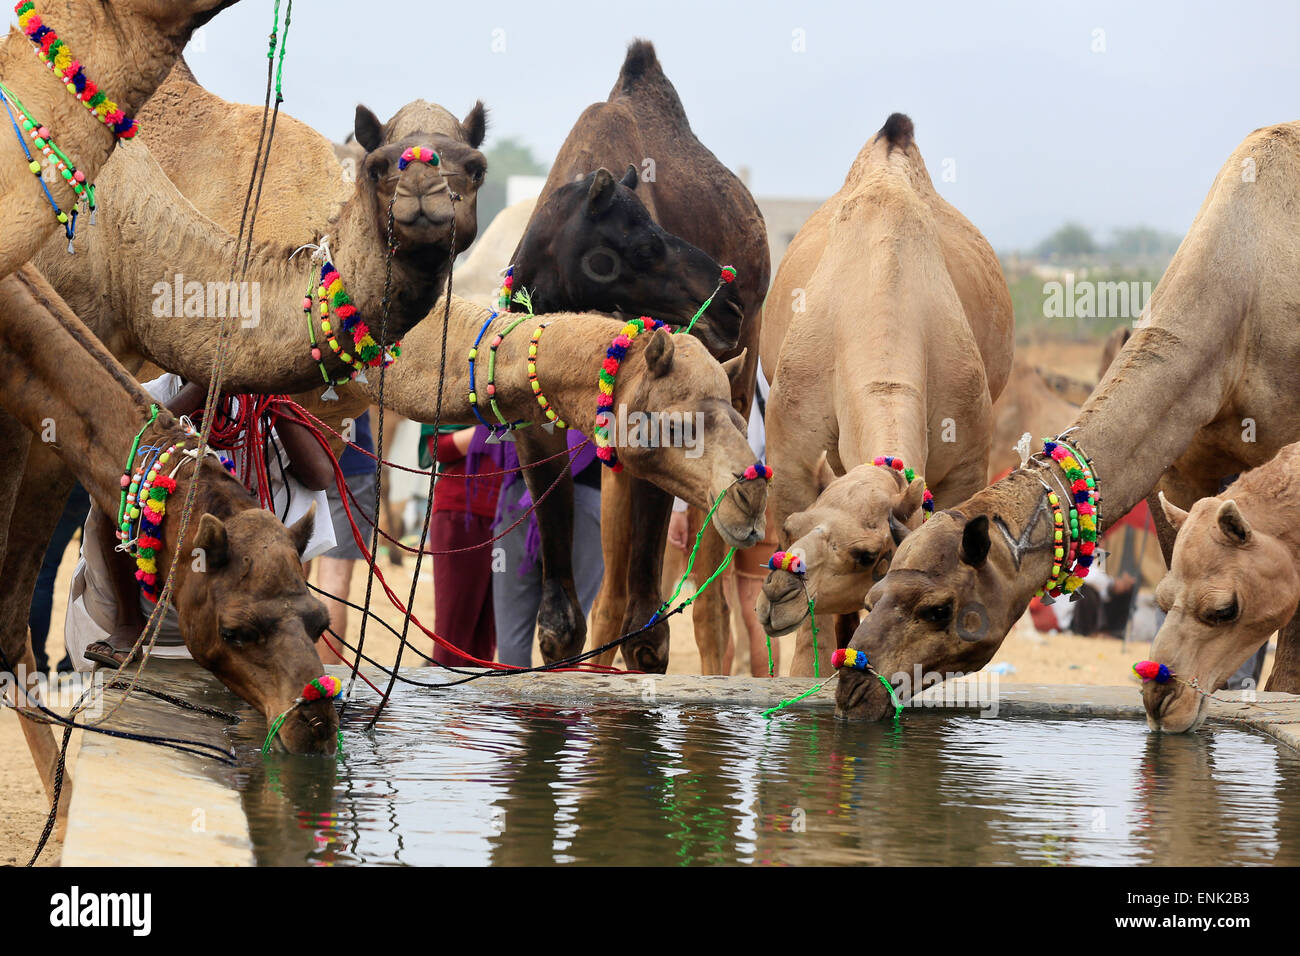 Camel herds bring camels to the watering pool specially designed for them in Pushkar Camel Fair - Stock Image